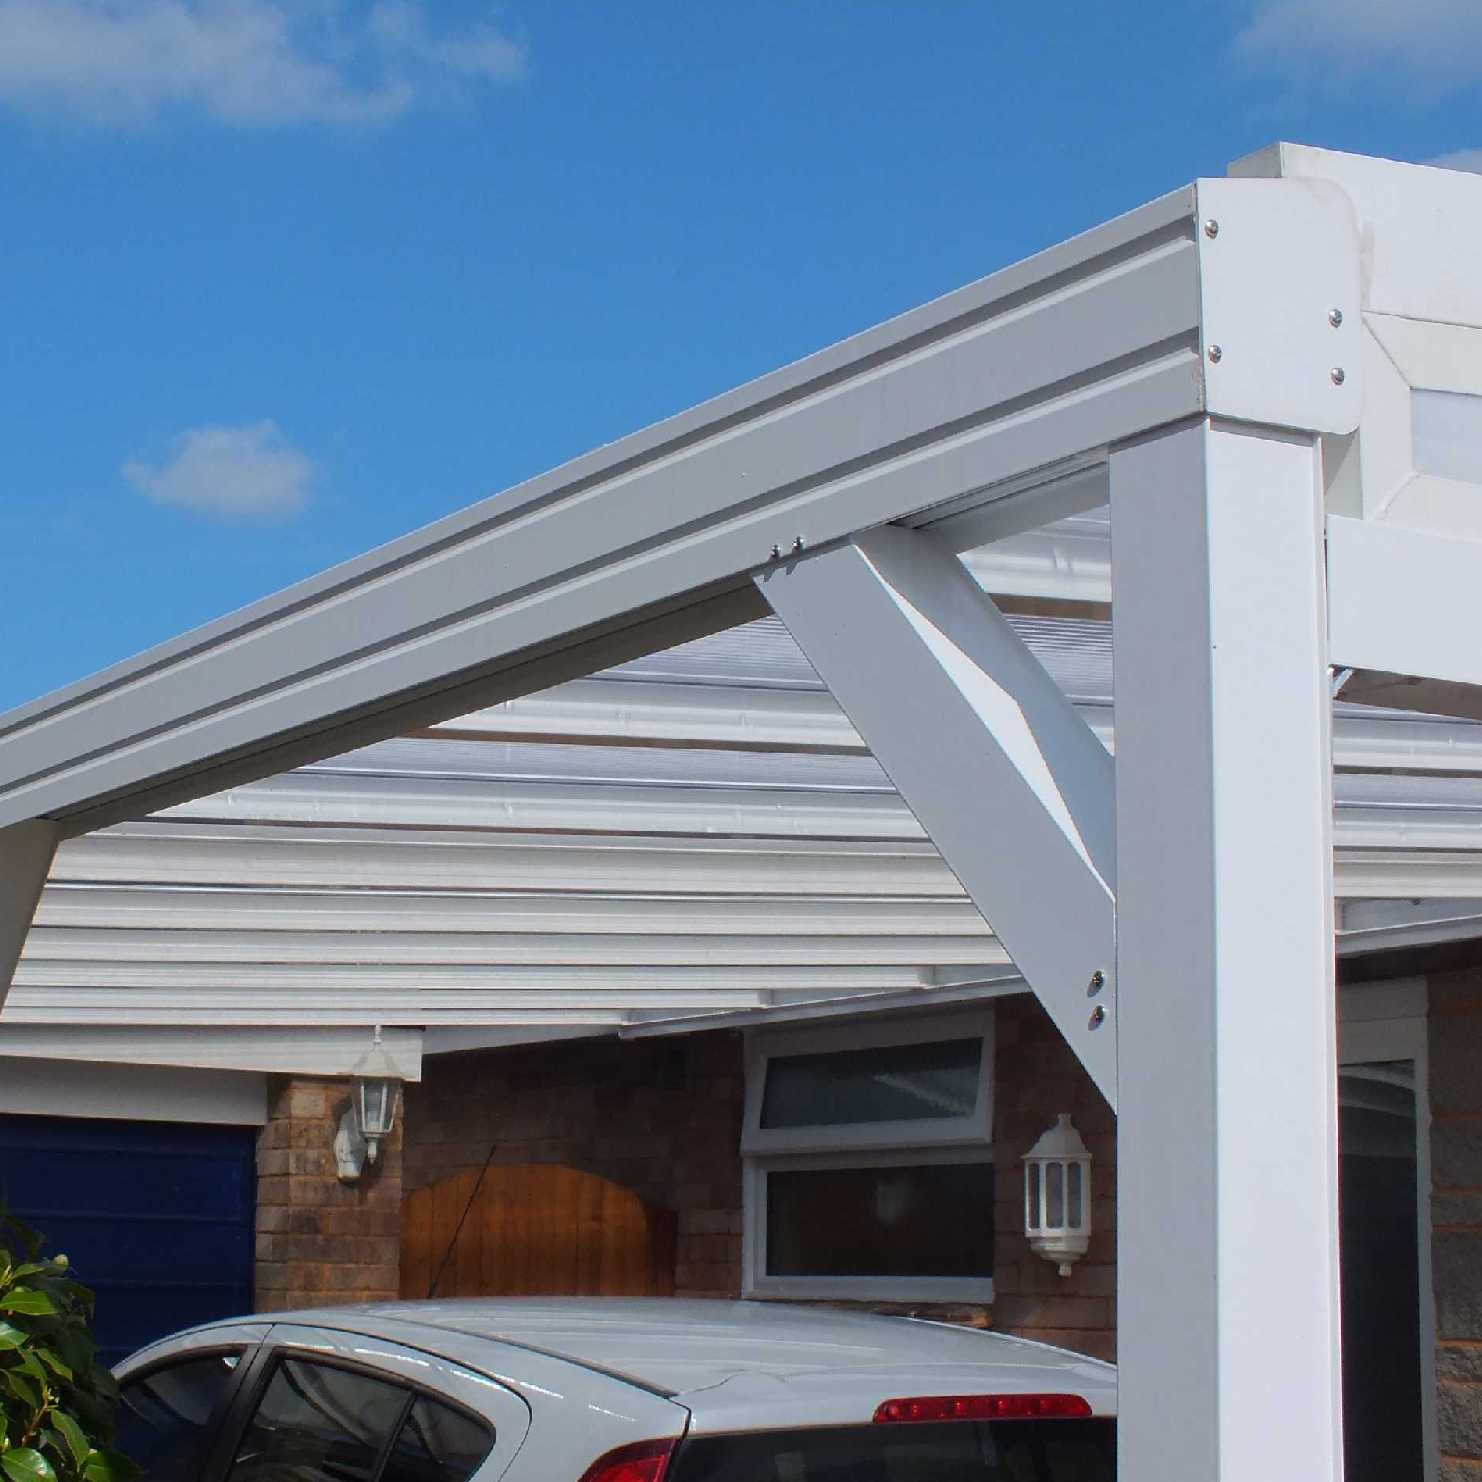 Buy Omega Smart White Lean-To Canopy with 16mm Polycarbonate Glazing - 4.8m (W) x 4.5m (P), (3) Supporting Posts online today